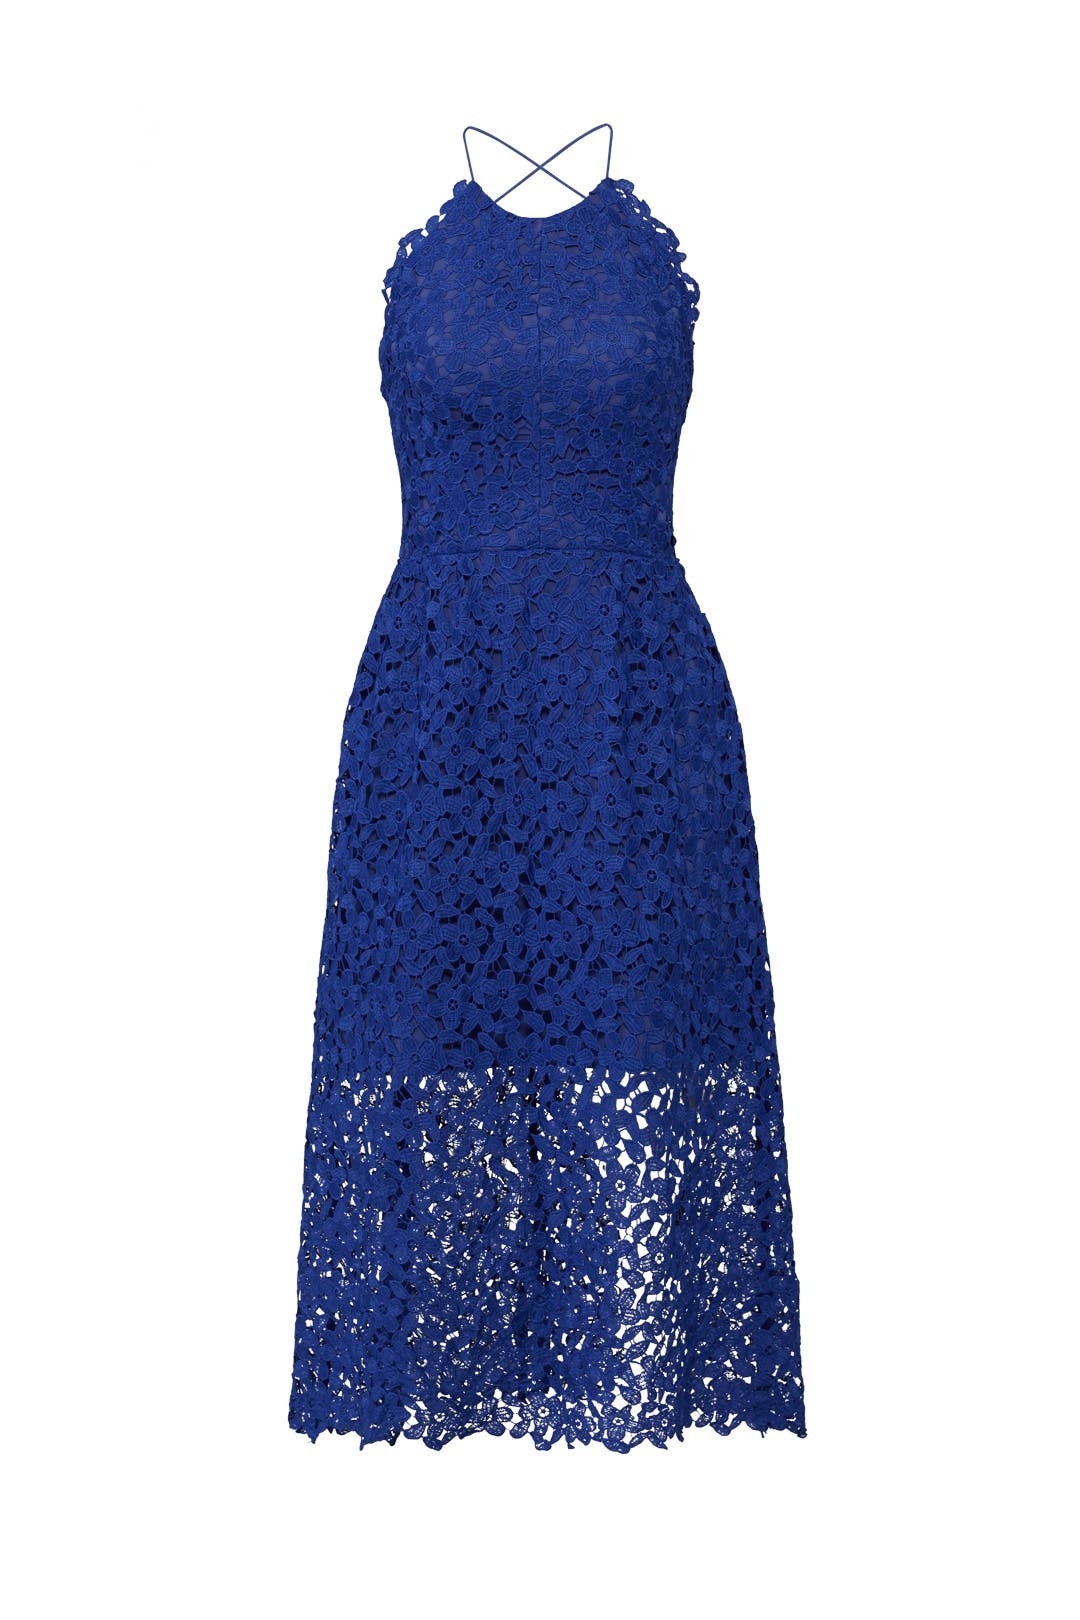 Cobalt Lace Midi Dress by Slate & Willow for $40 - $55 | Rent the Runway